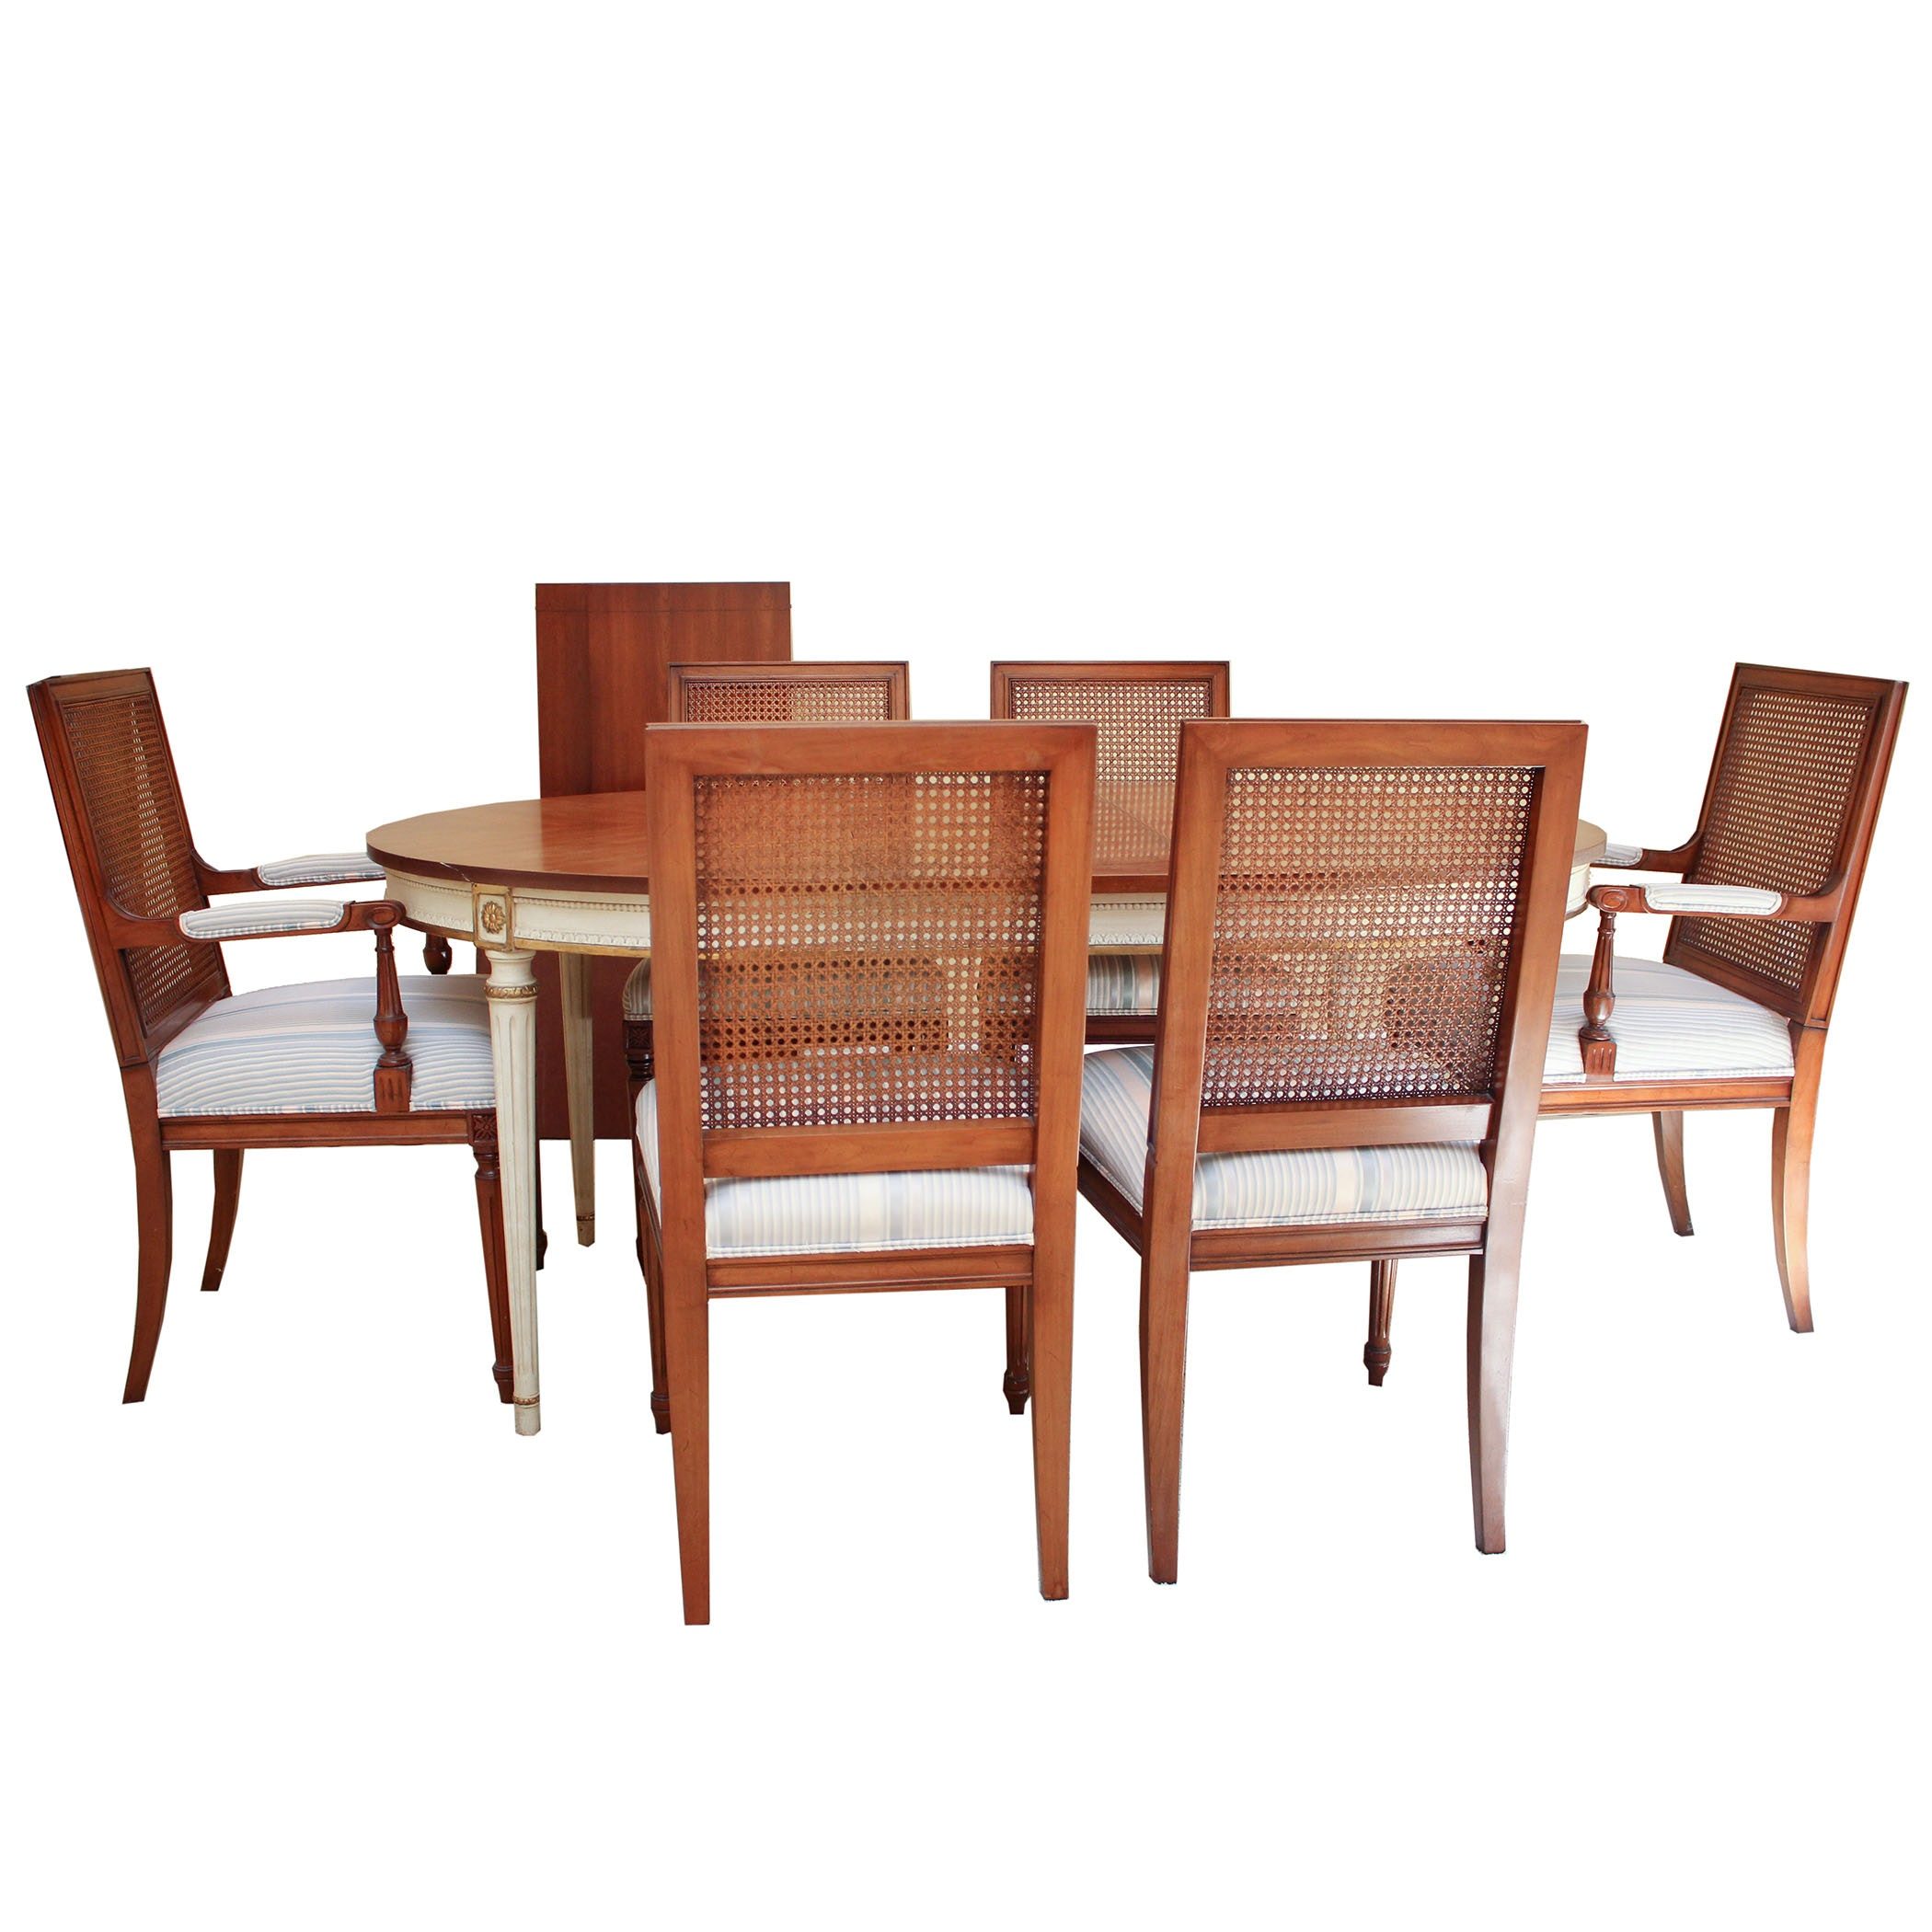 Dining Room Table Set with Chairs and Leaves